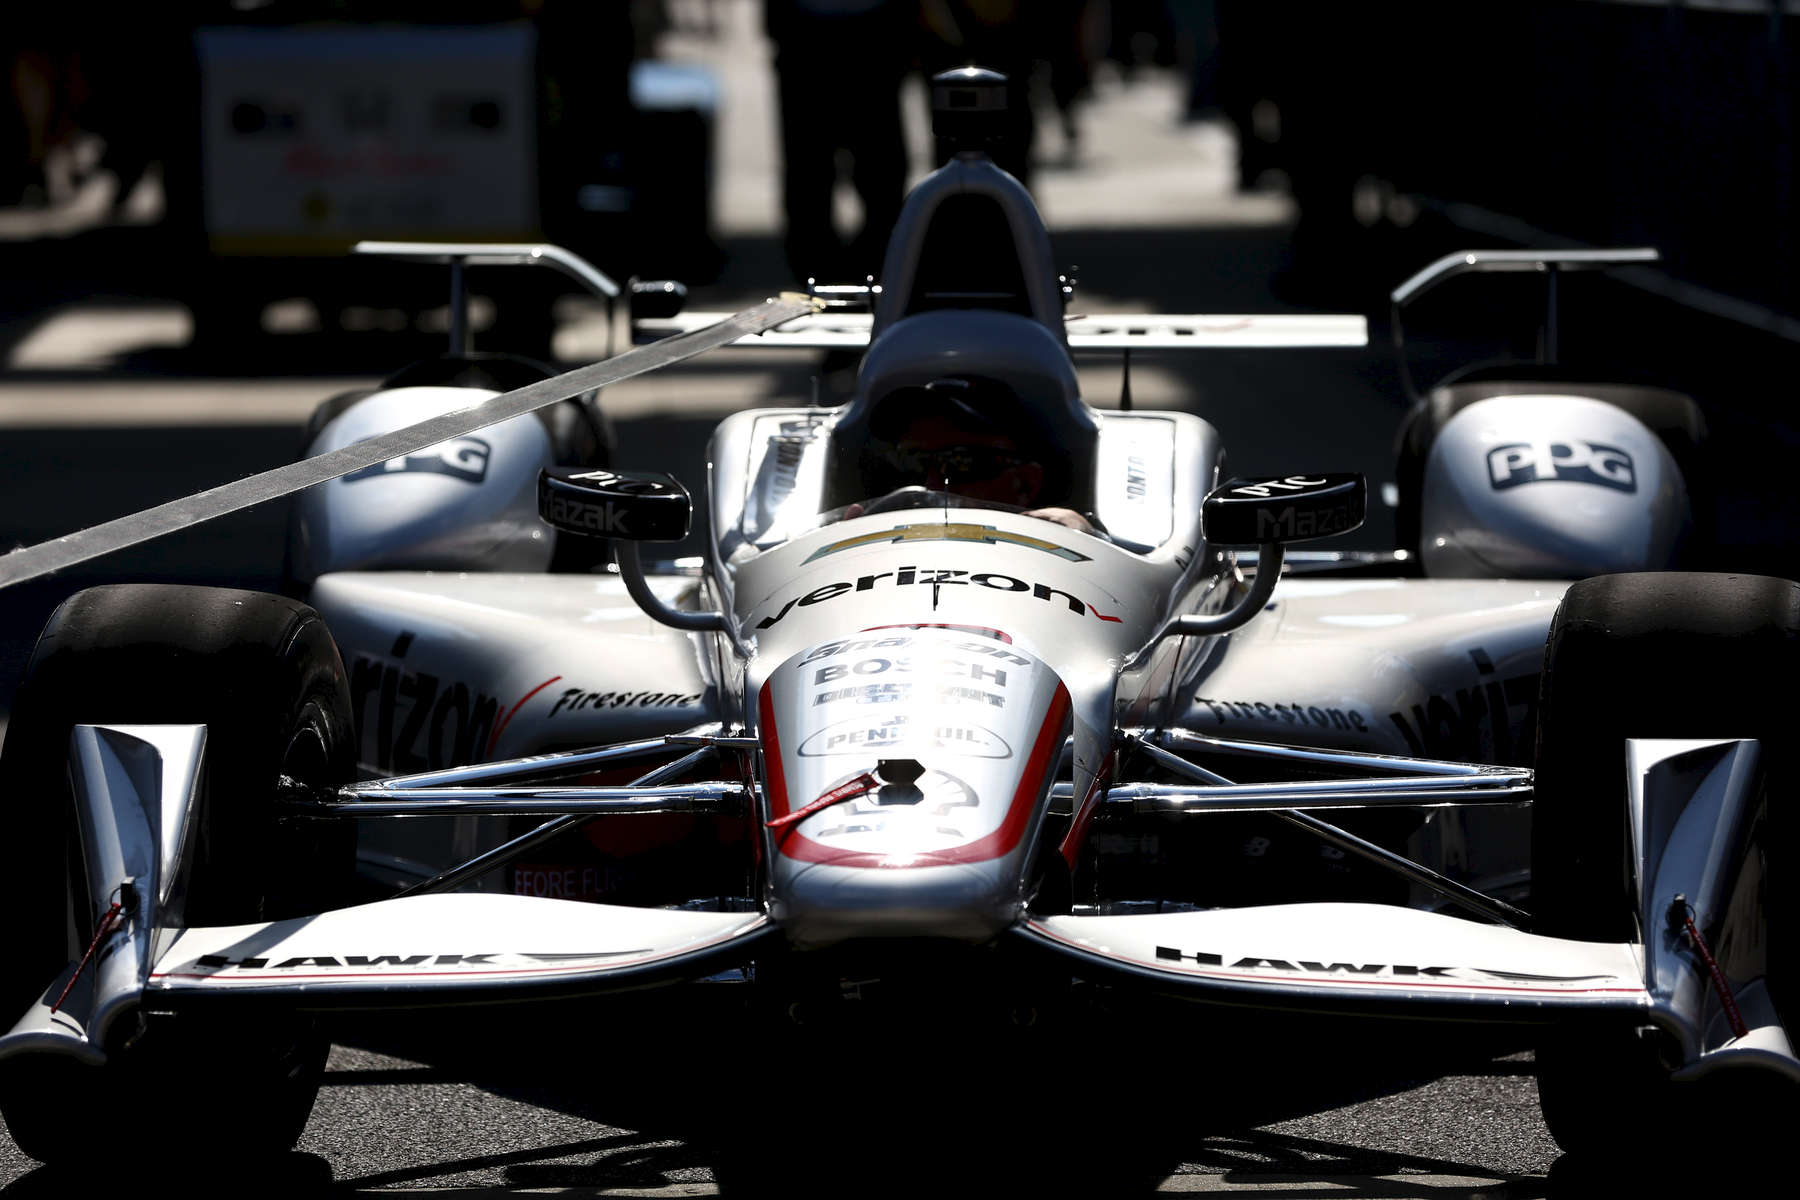 Juan Pablo Montoya's car is brought out before the start of the 100th running of the Indianapolis 500 May 29, 2016.